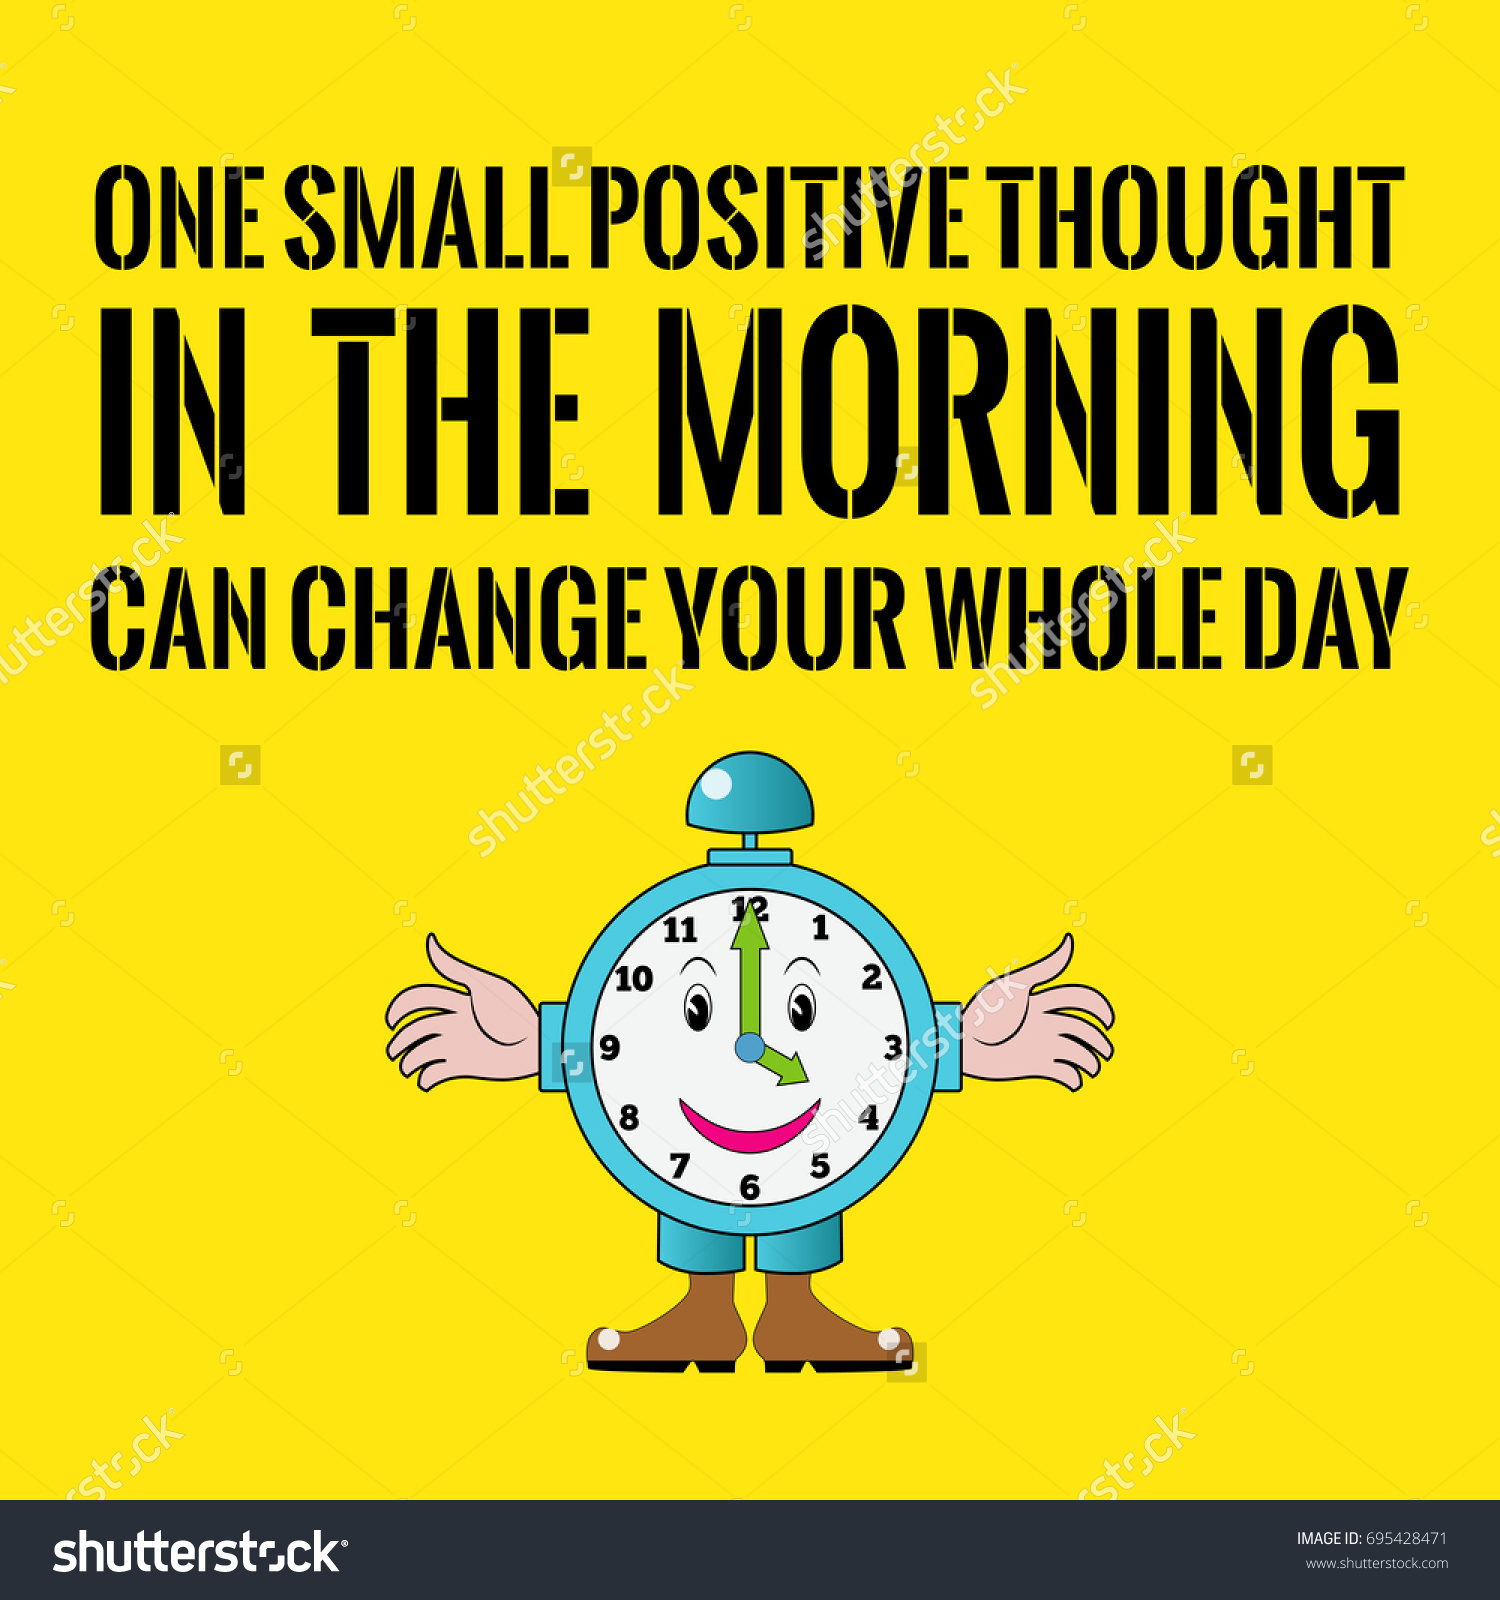 Thought Of The Day Motivational Motivational Quote One Small Positive Thought Stock Vector